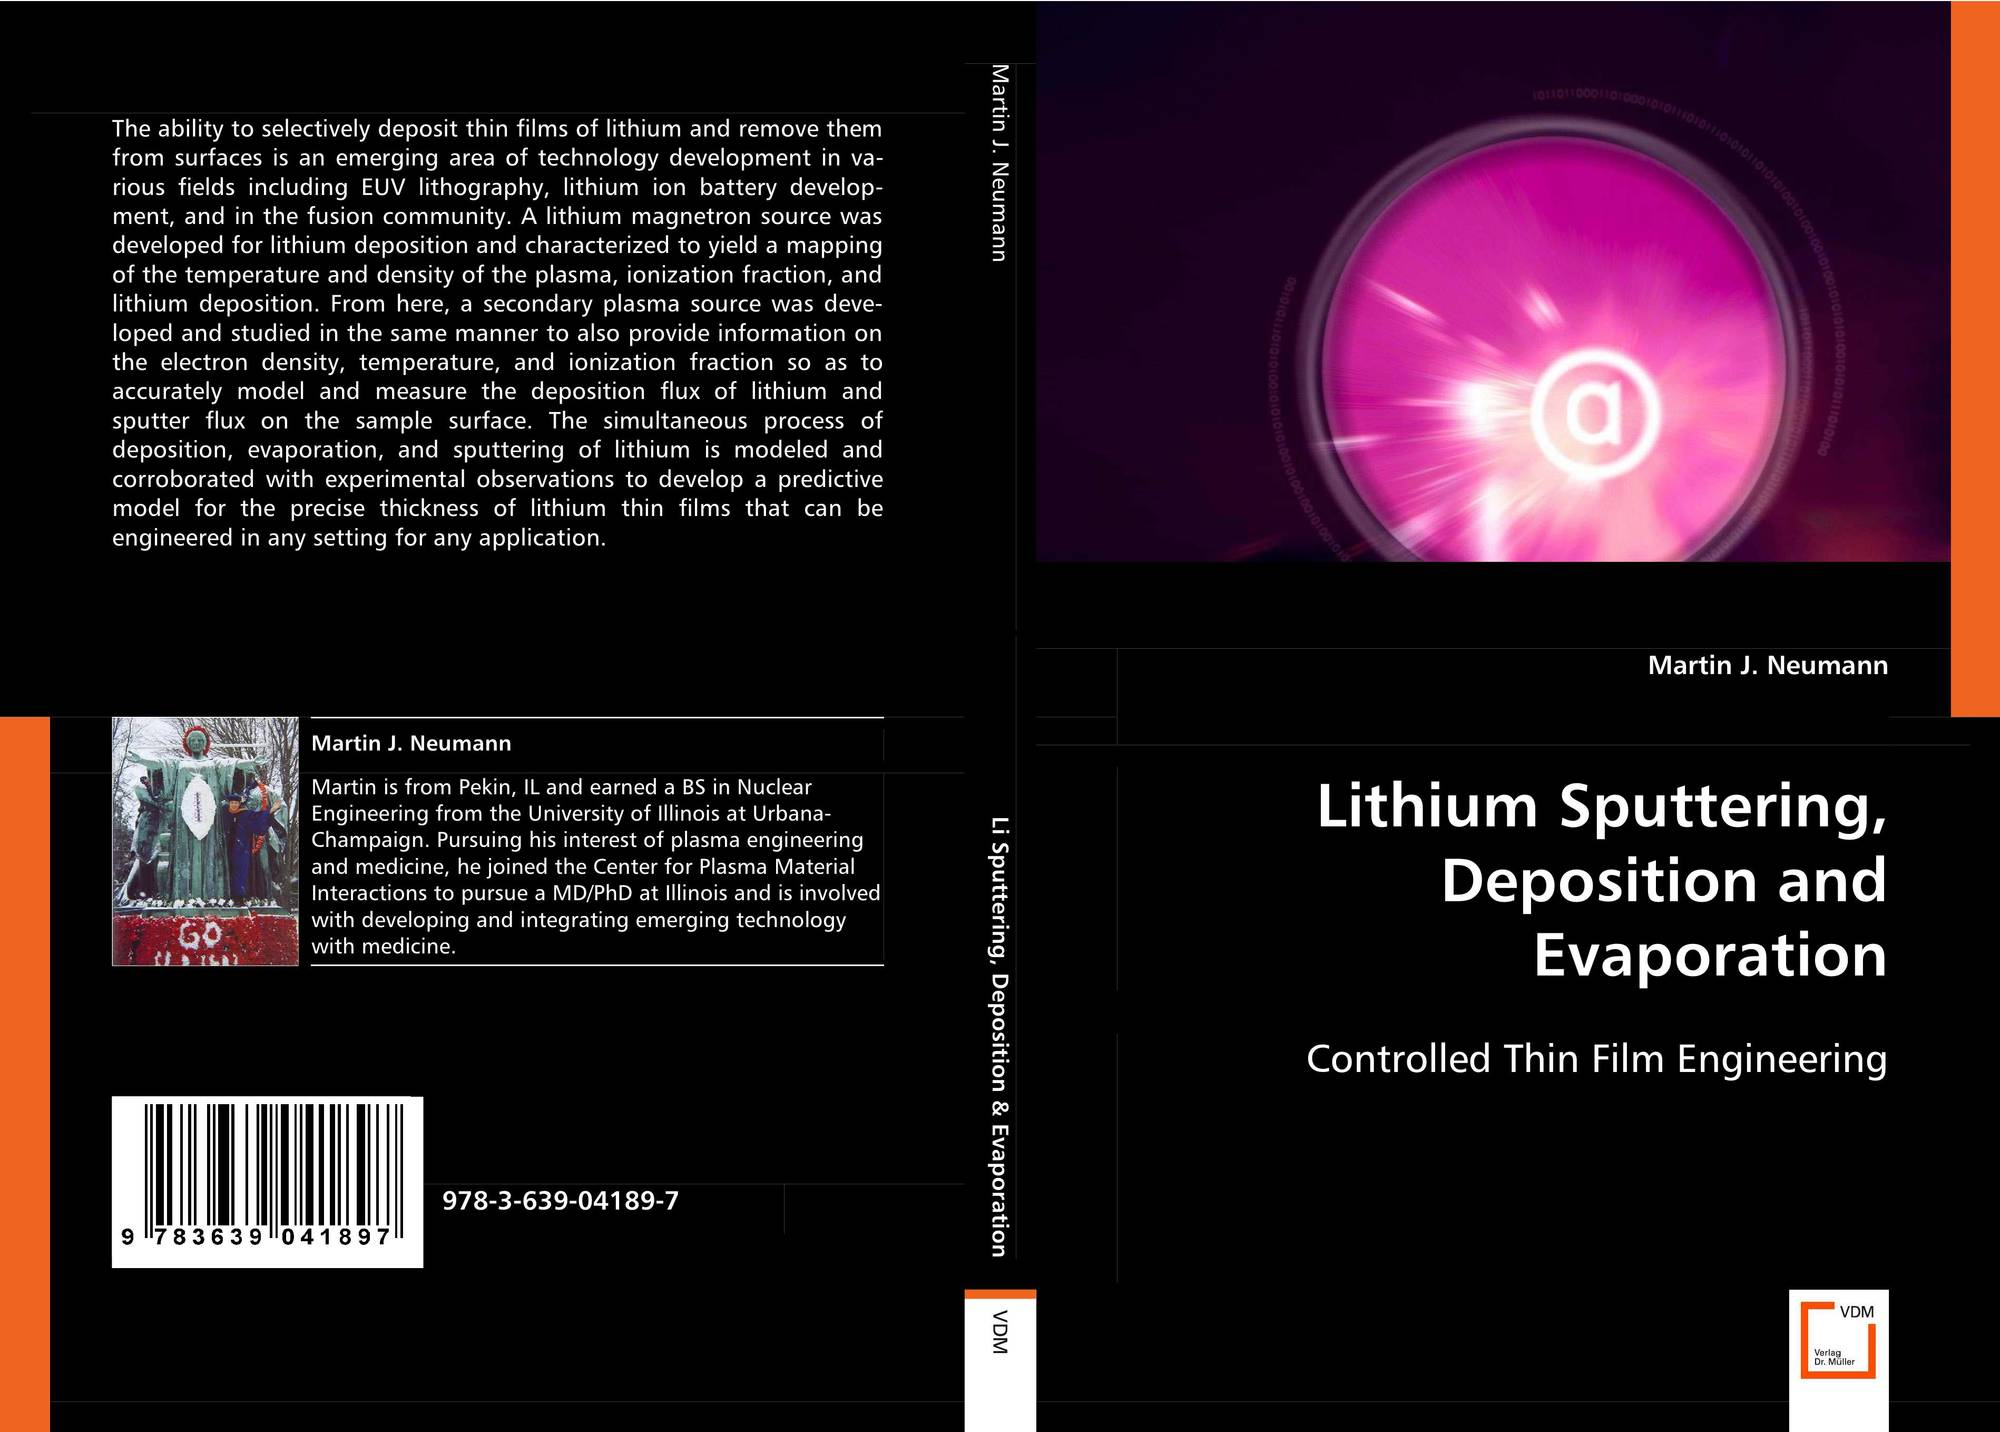 Lithium Sputtering, Deposition and Evaporation, 978-3-639